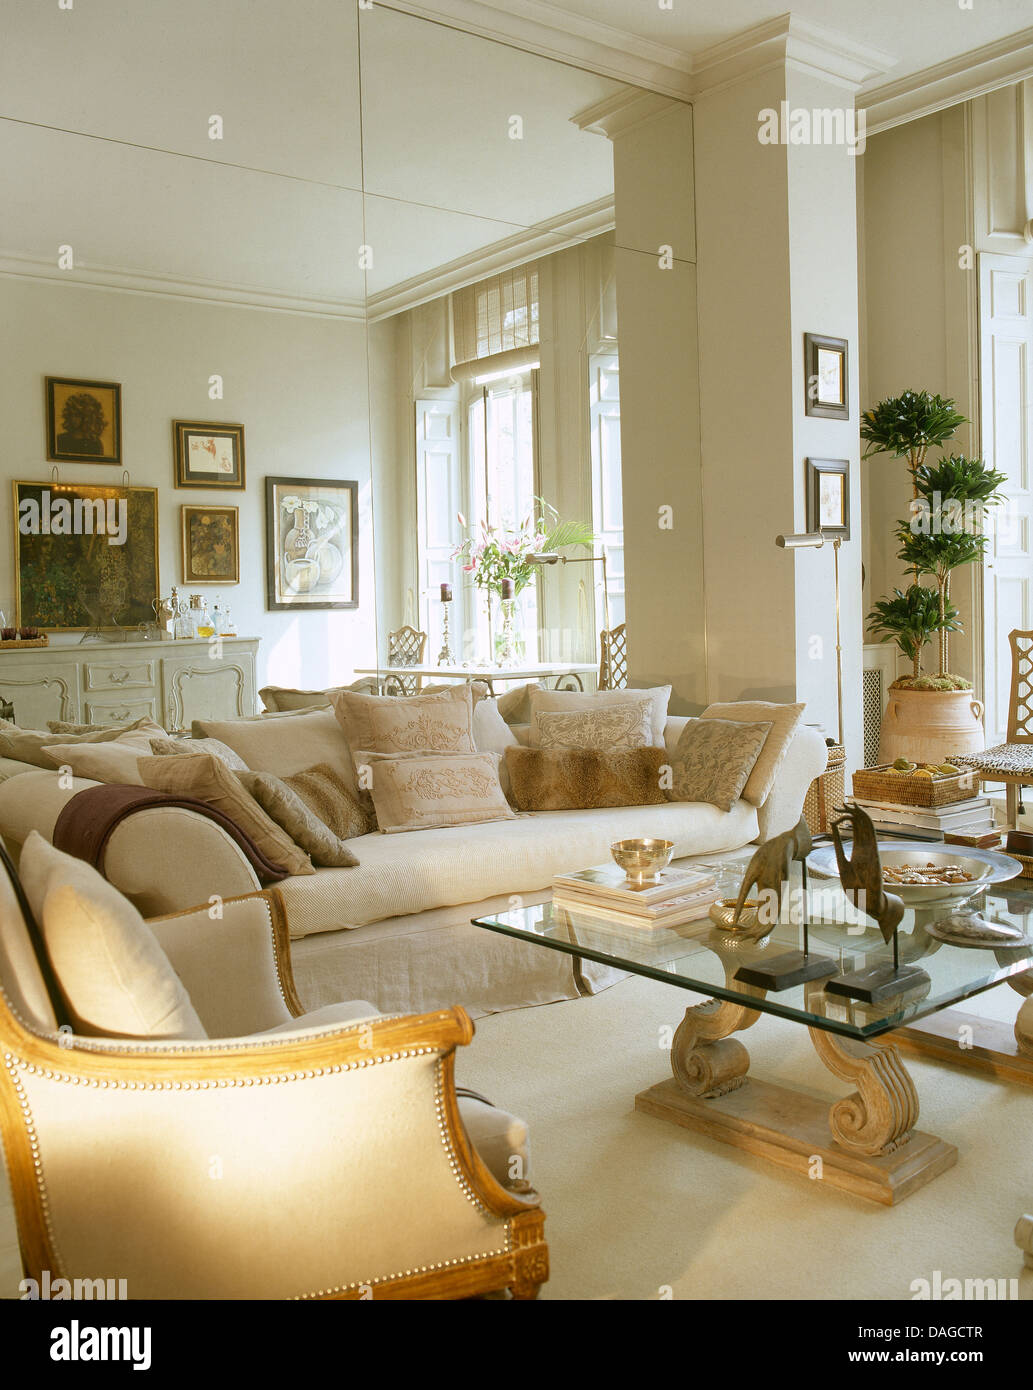 mirrored wall behind cream sofa in town house living room with glass